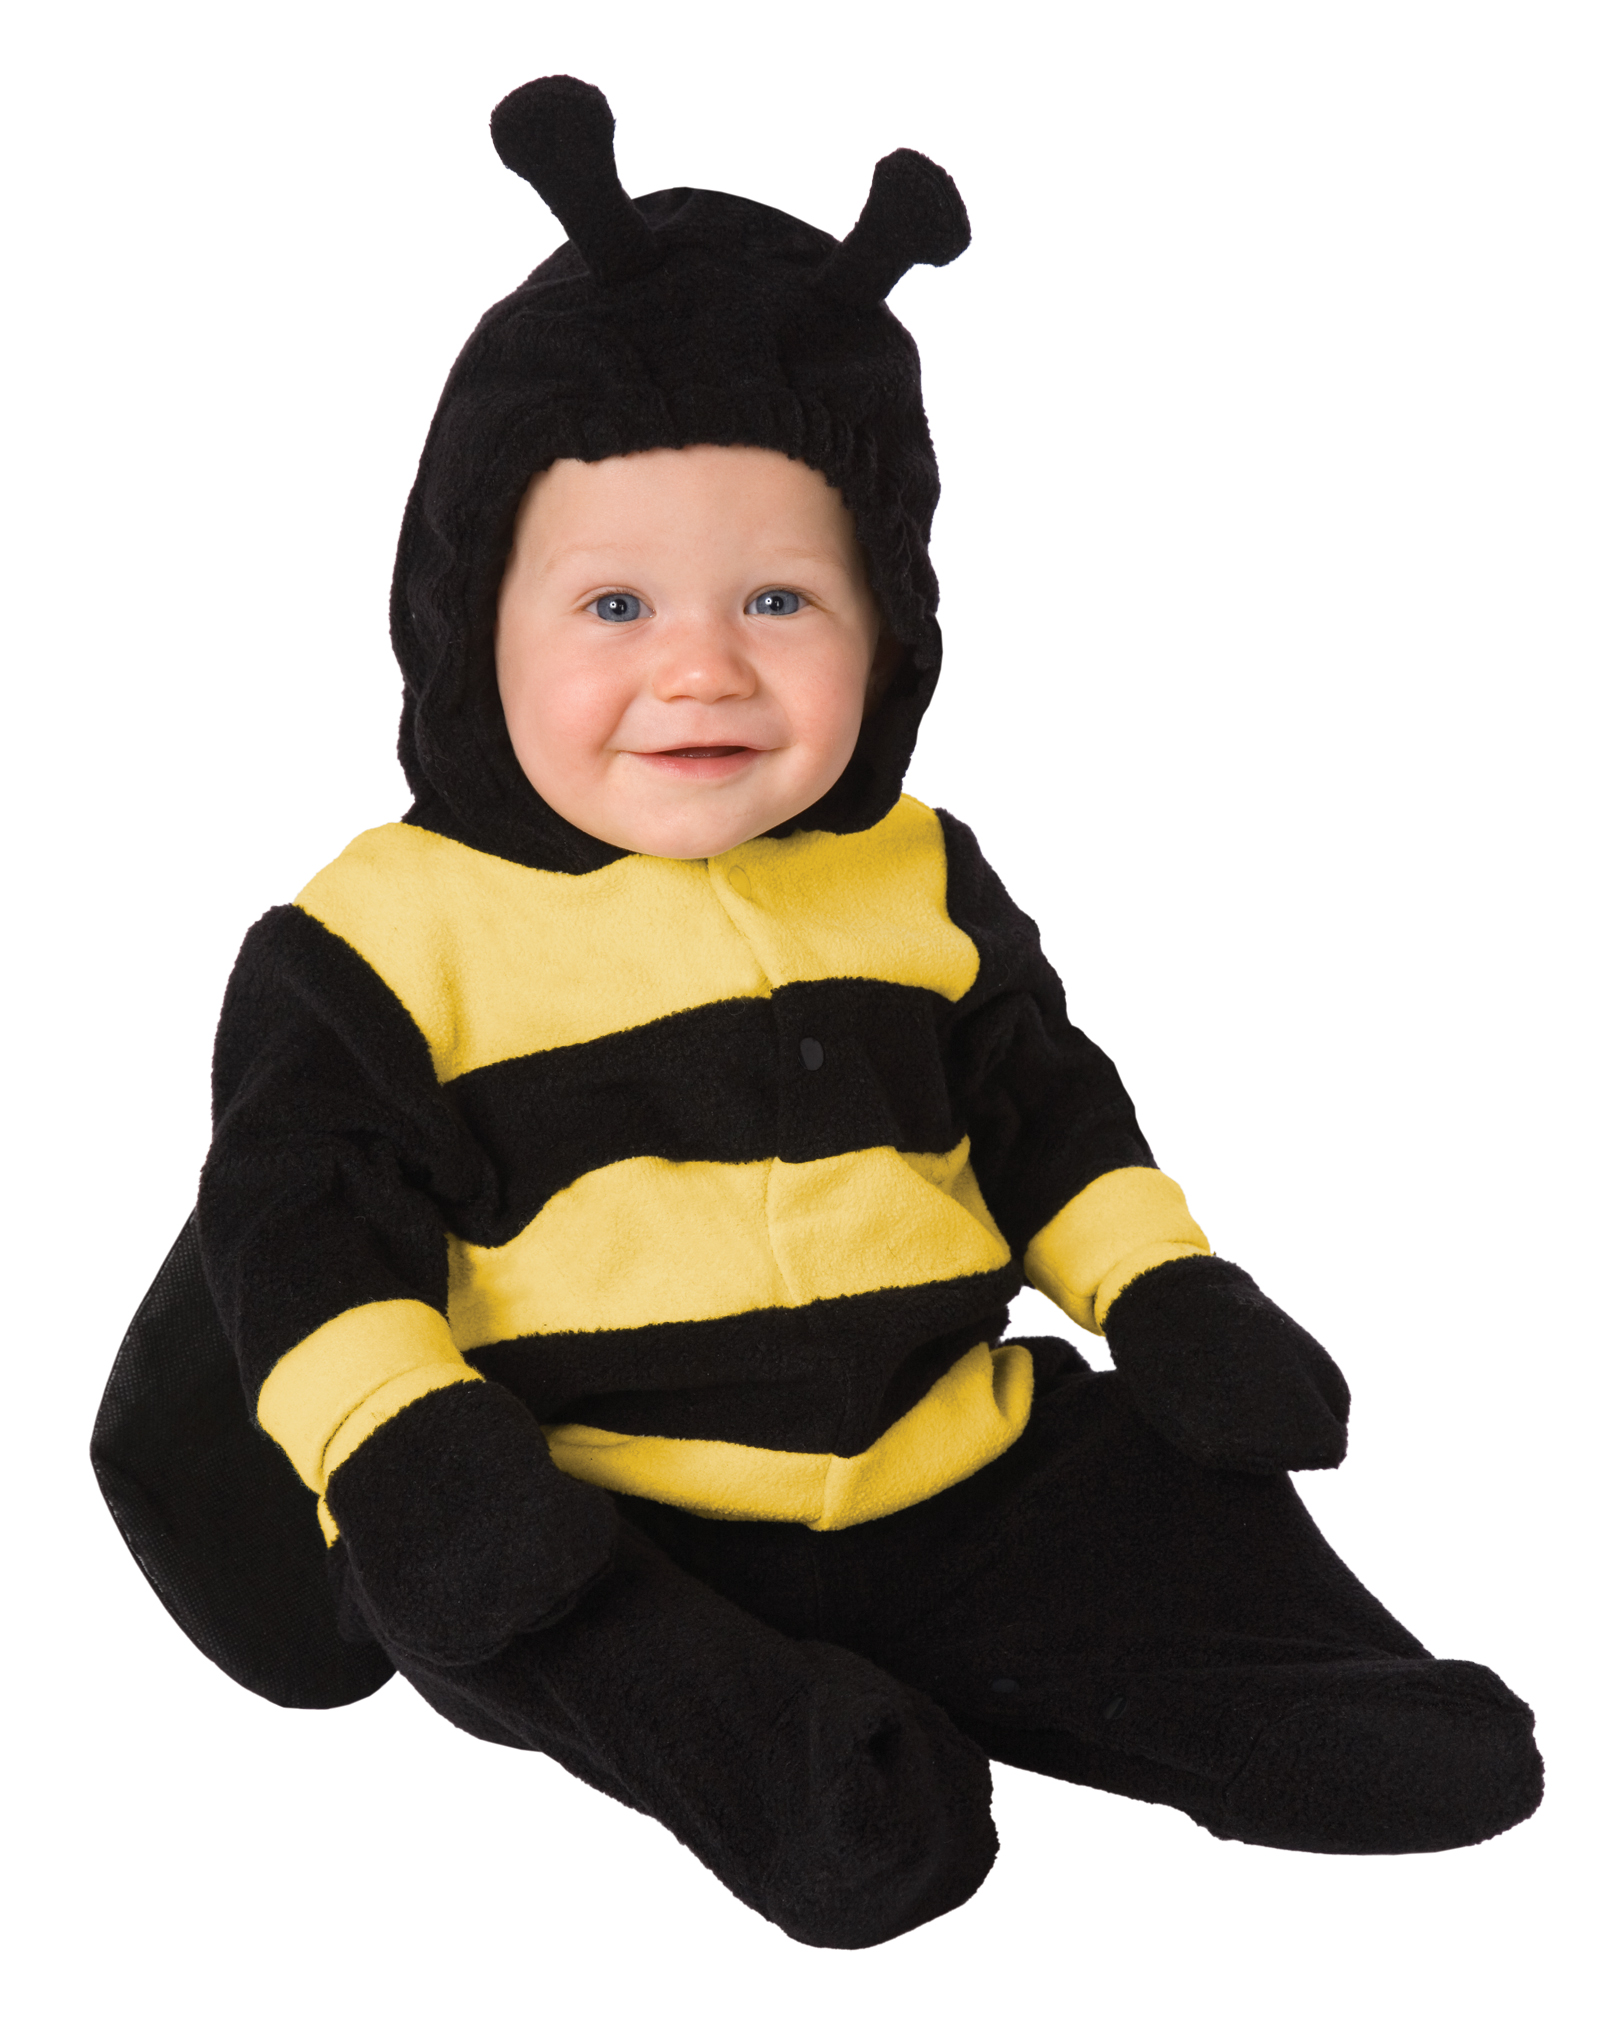 Baby Bumble Bee Infant / Toddler Costume   Unisex   Size 0 9 Months